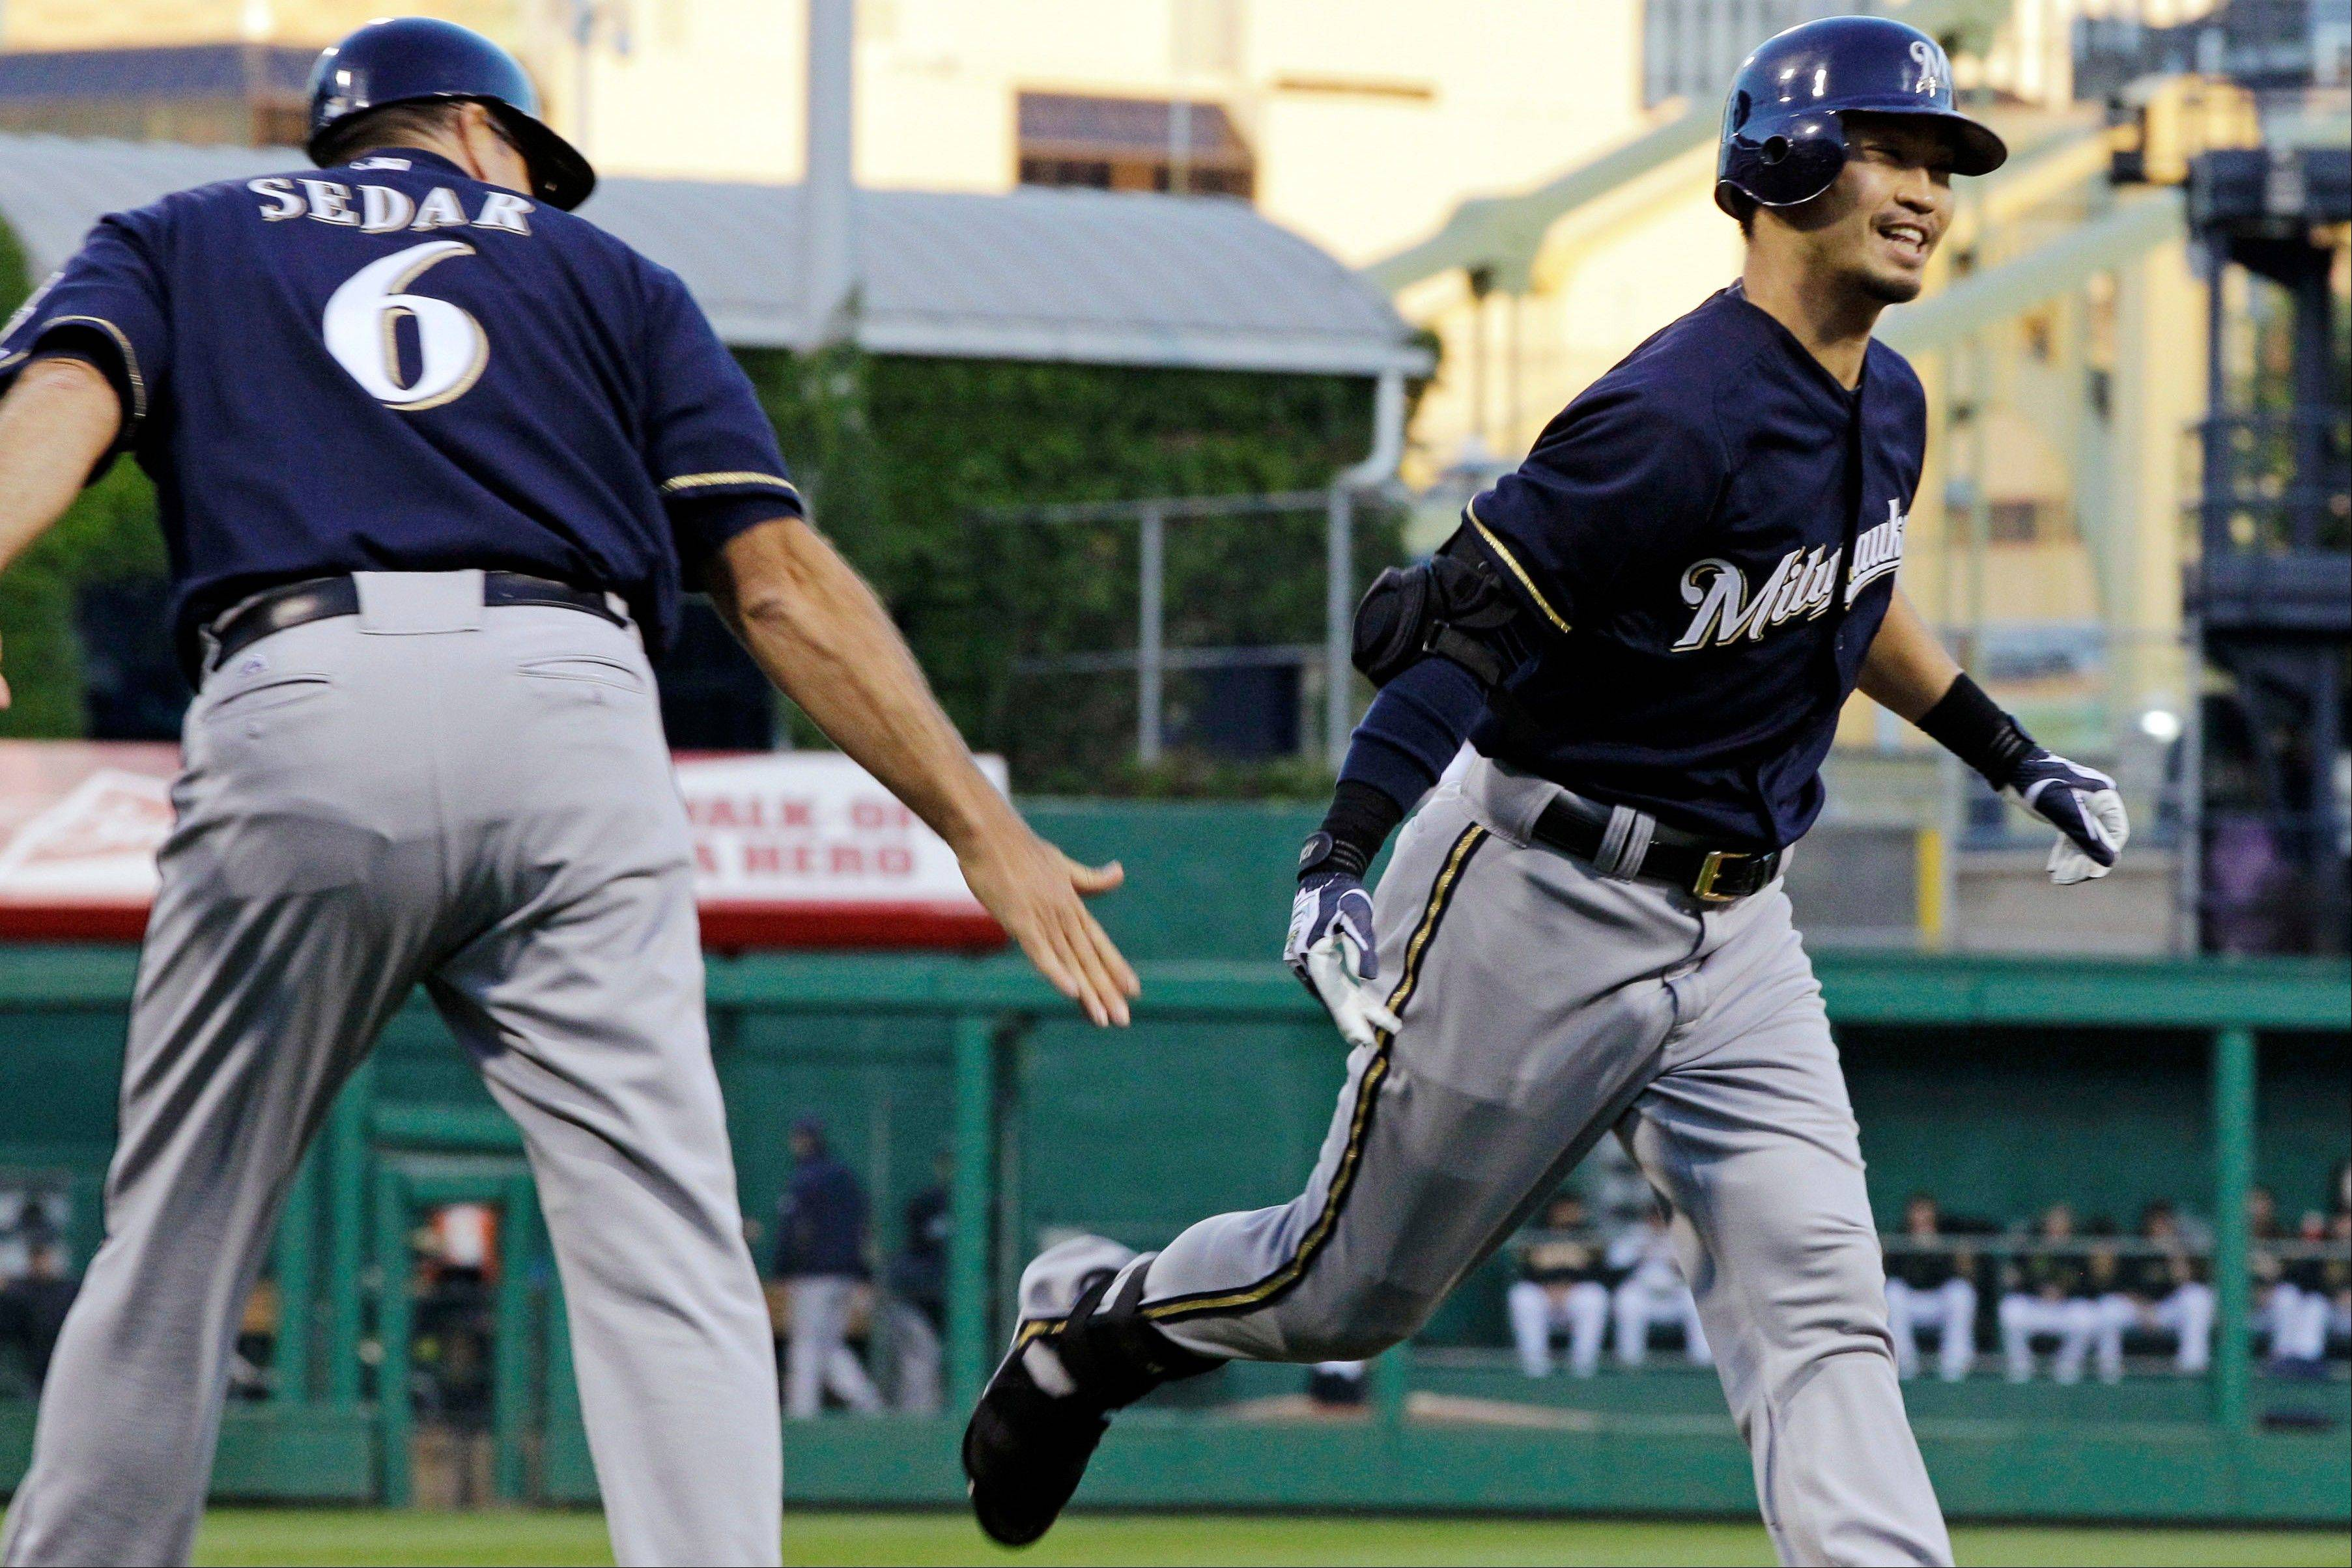 The Milwaukee Brewers' Norichika Aoki is congratulated Wednesday by third base coach Ed Sedar after hitting a solo home run off Pittsburgh Pirates starting pitcher Kyle McPherson during the first inning in Pittsburgh.